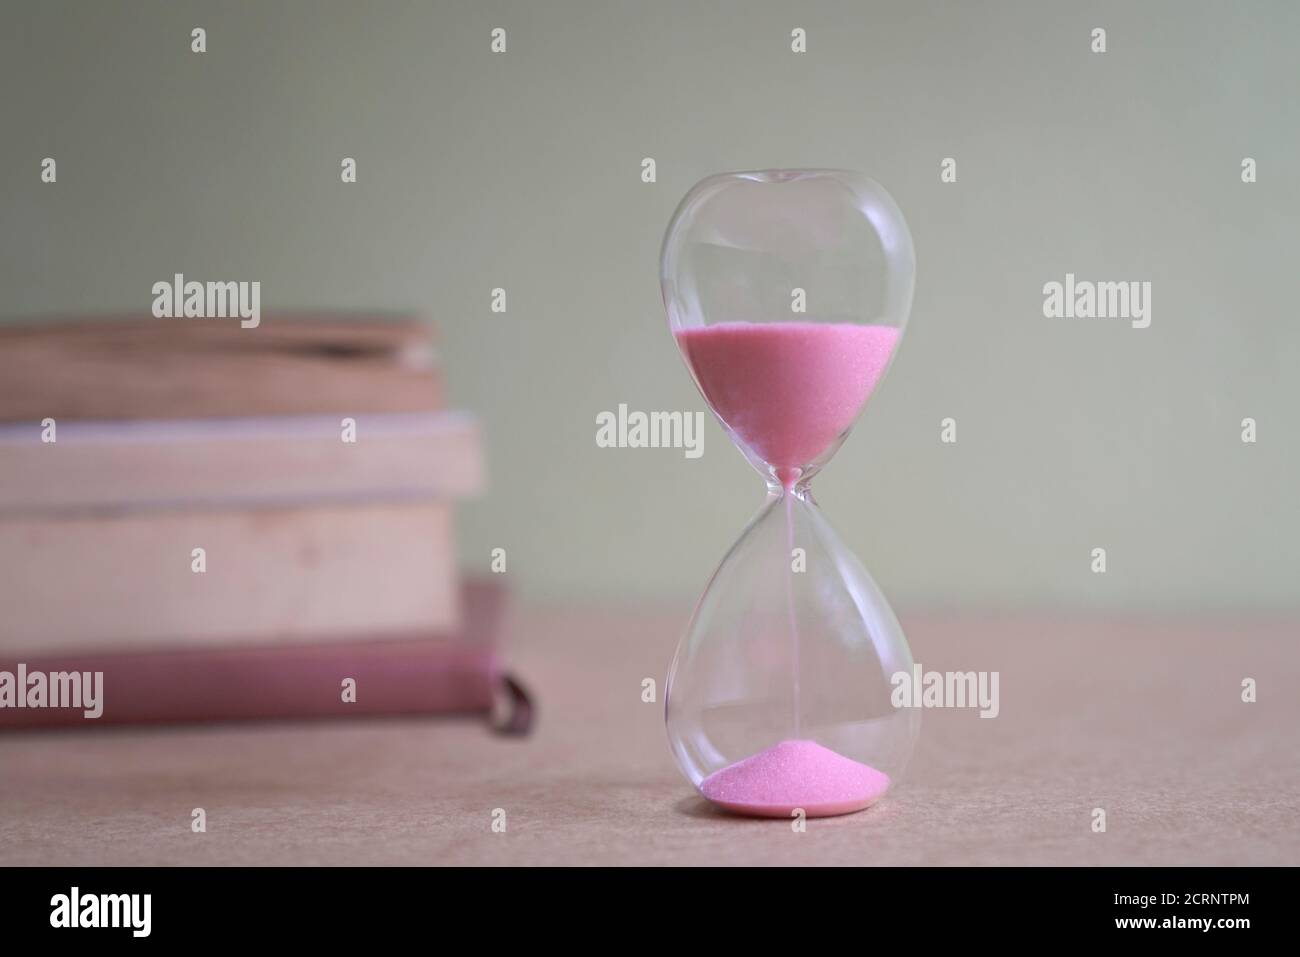 Hourglass with sand flowing with books by the side. Examination, deadlines or student life concept. Stock Photo